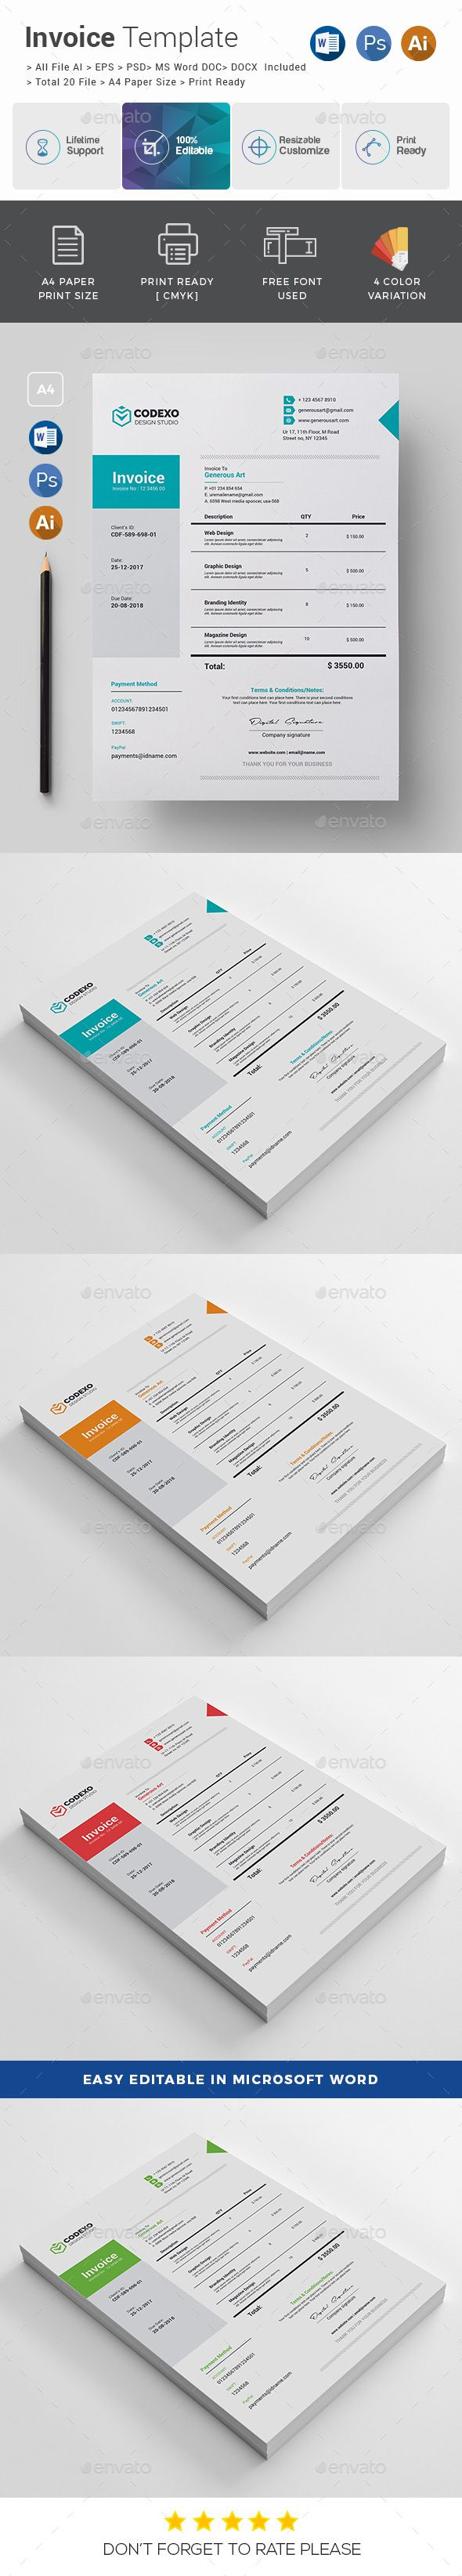 Invoice Template PSD, Vector EPS, AI Illustrator, MS Word - A4 & US Letter Size